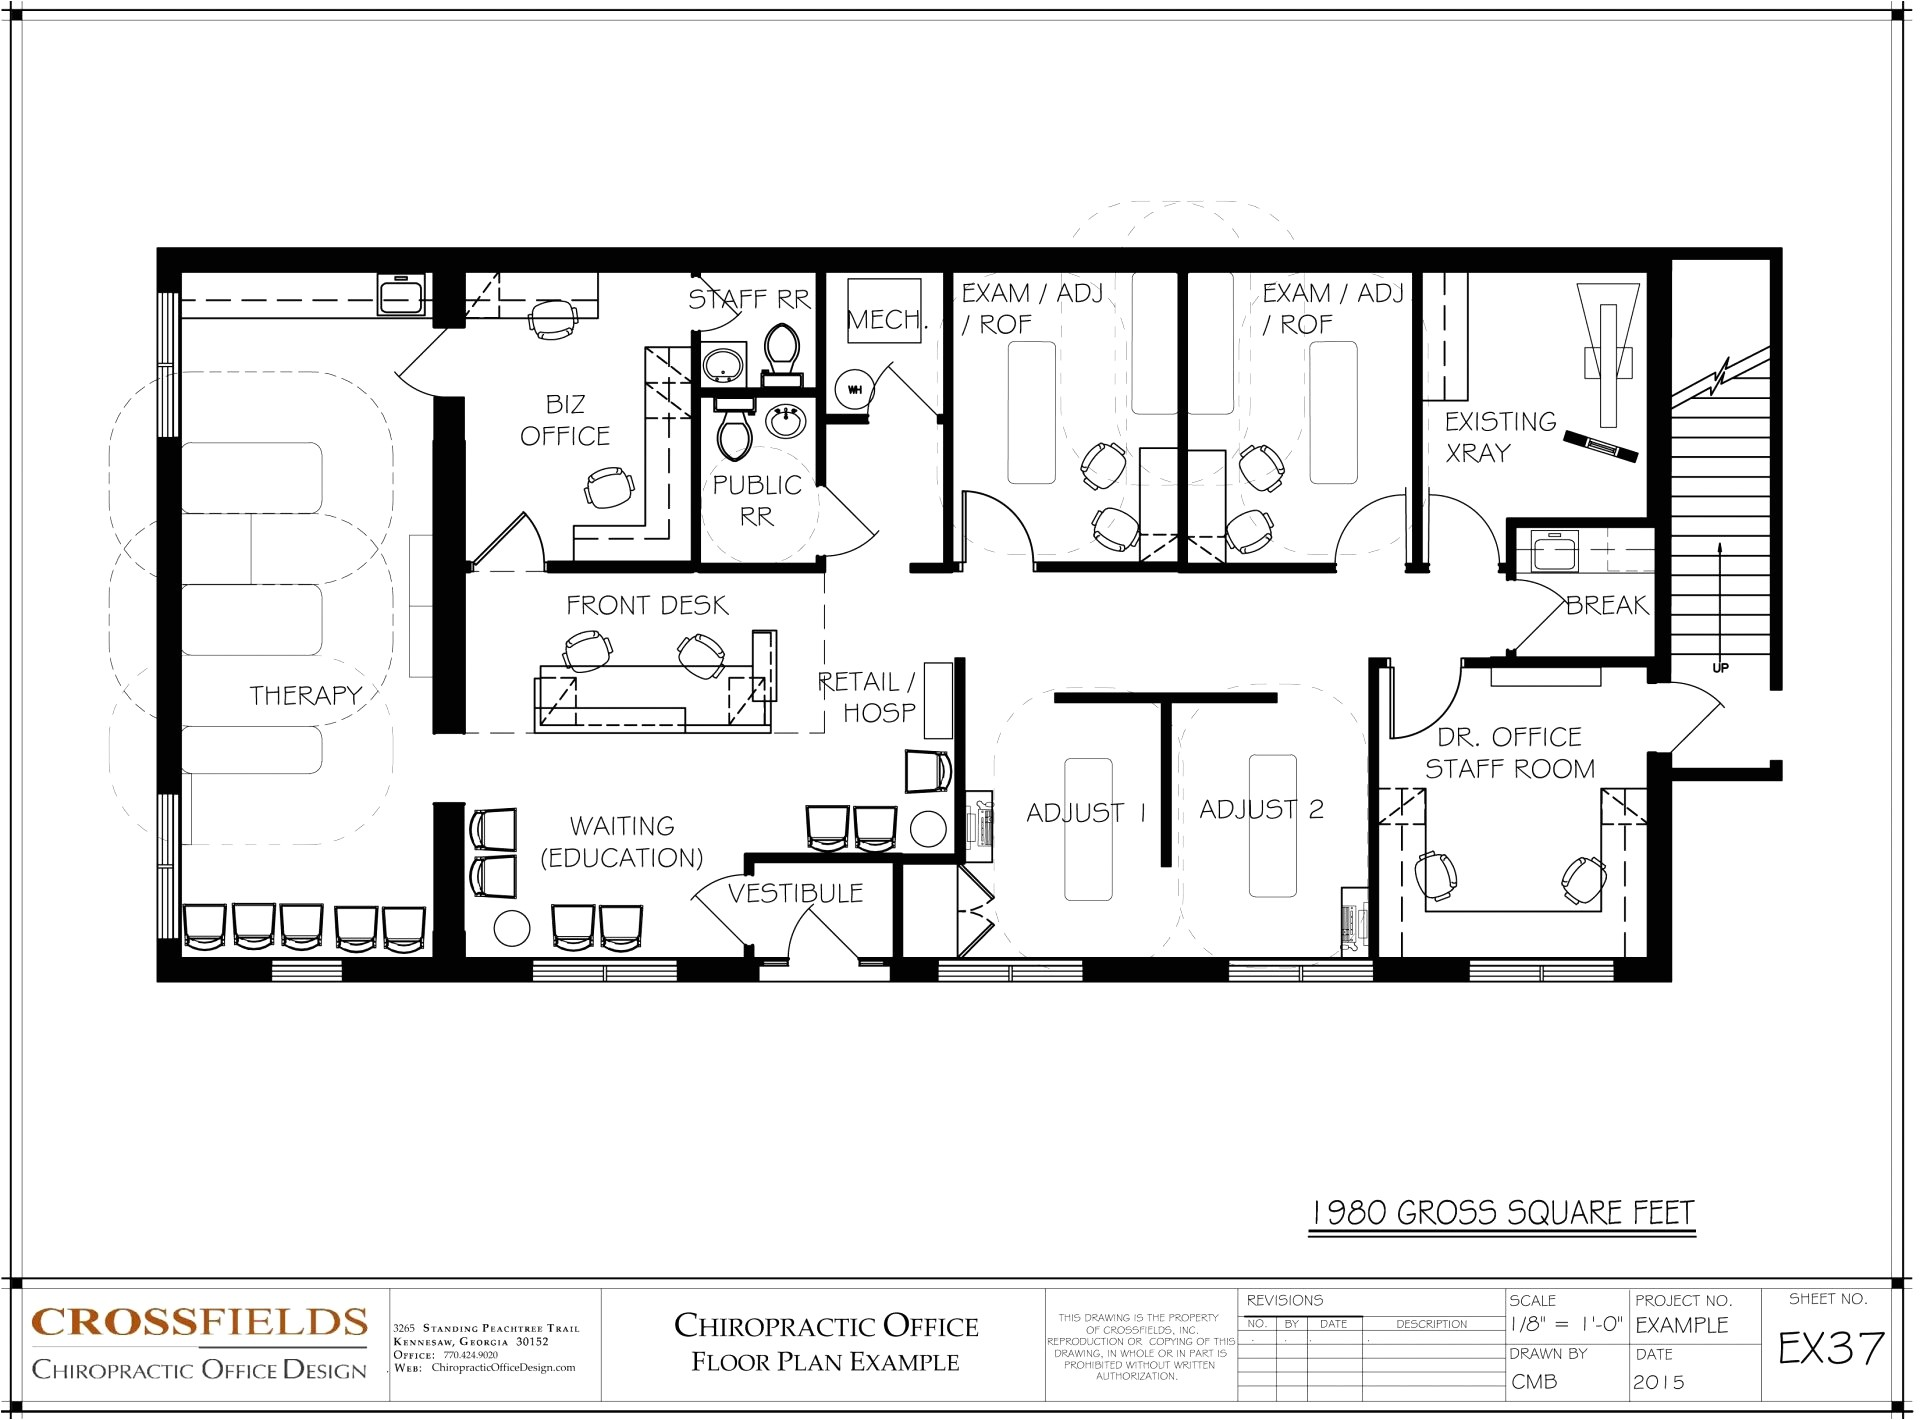 1200 Square Foot House Plans with Basement 49 Elegant Image Of 1200 Square Foot House Plans with